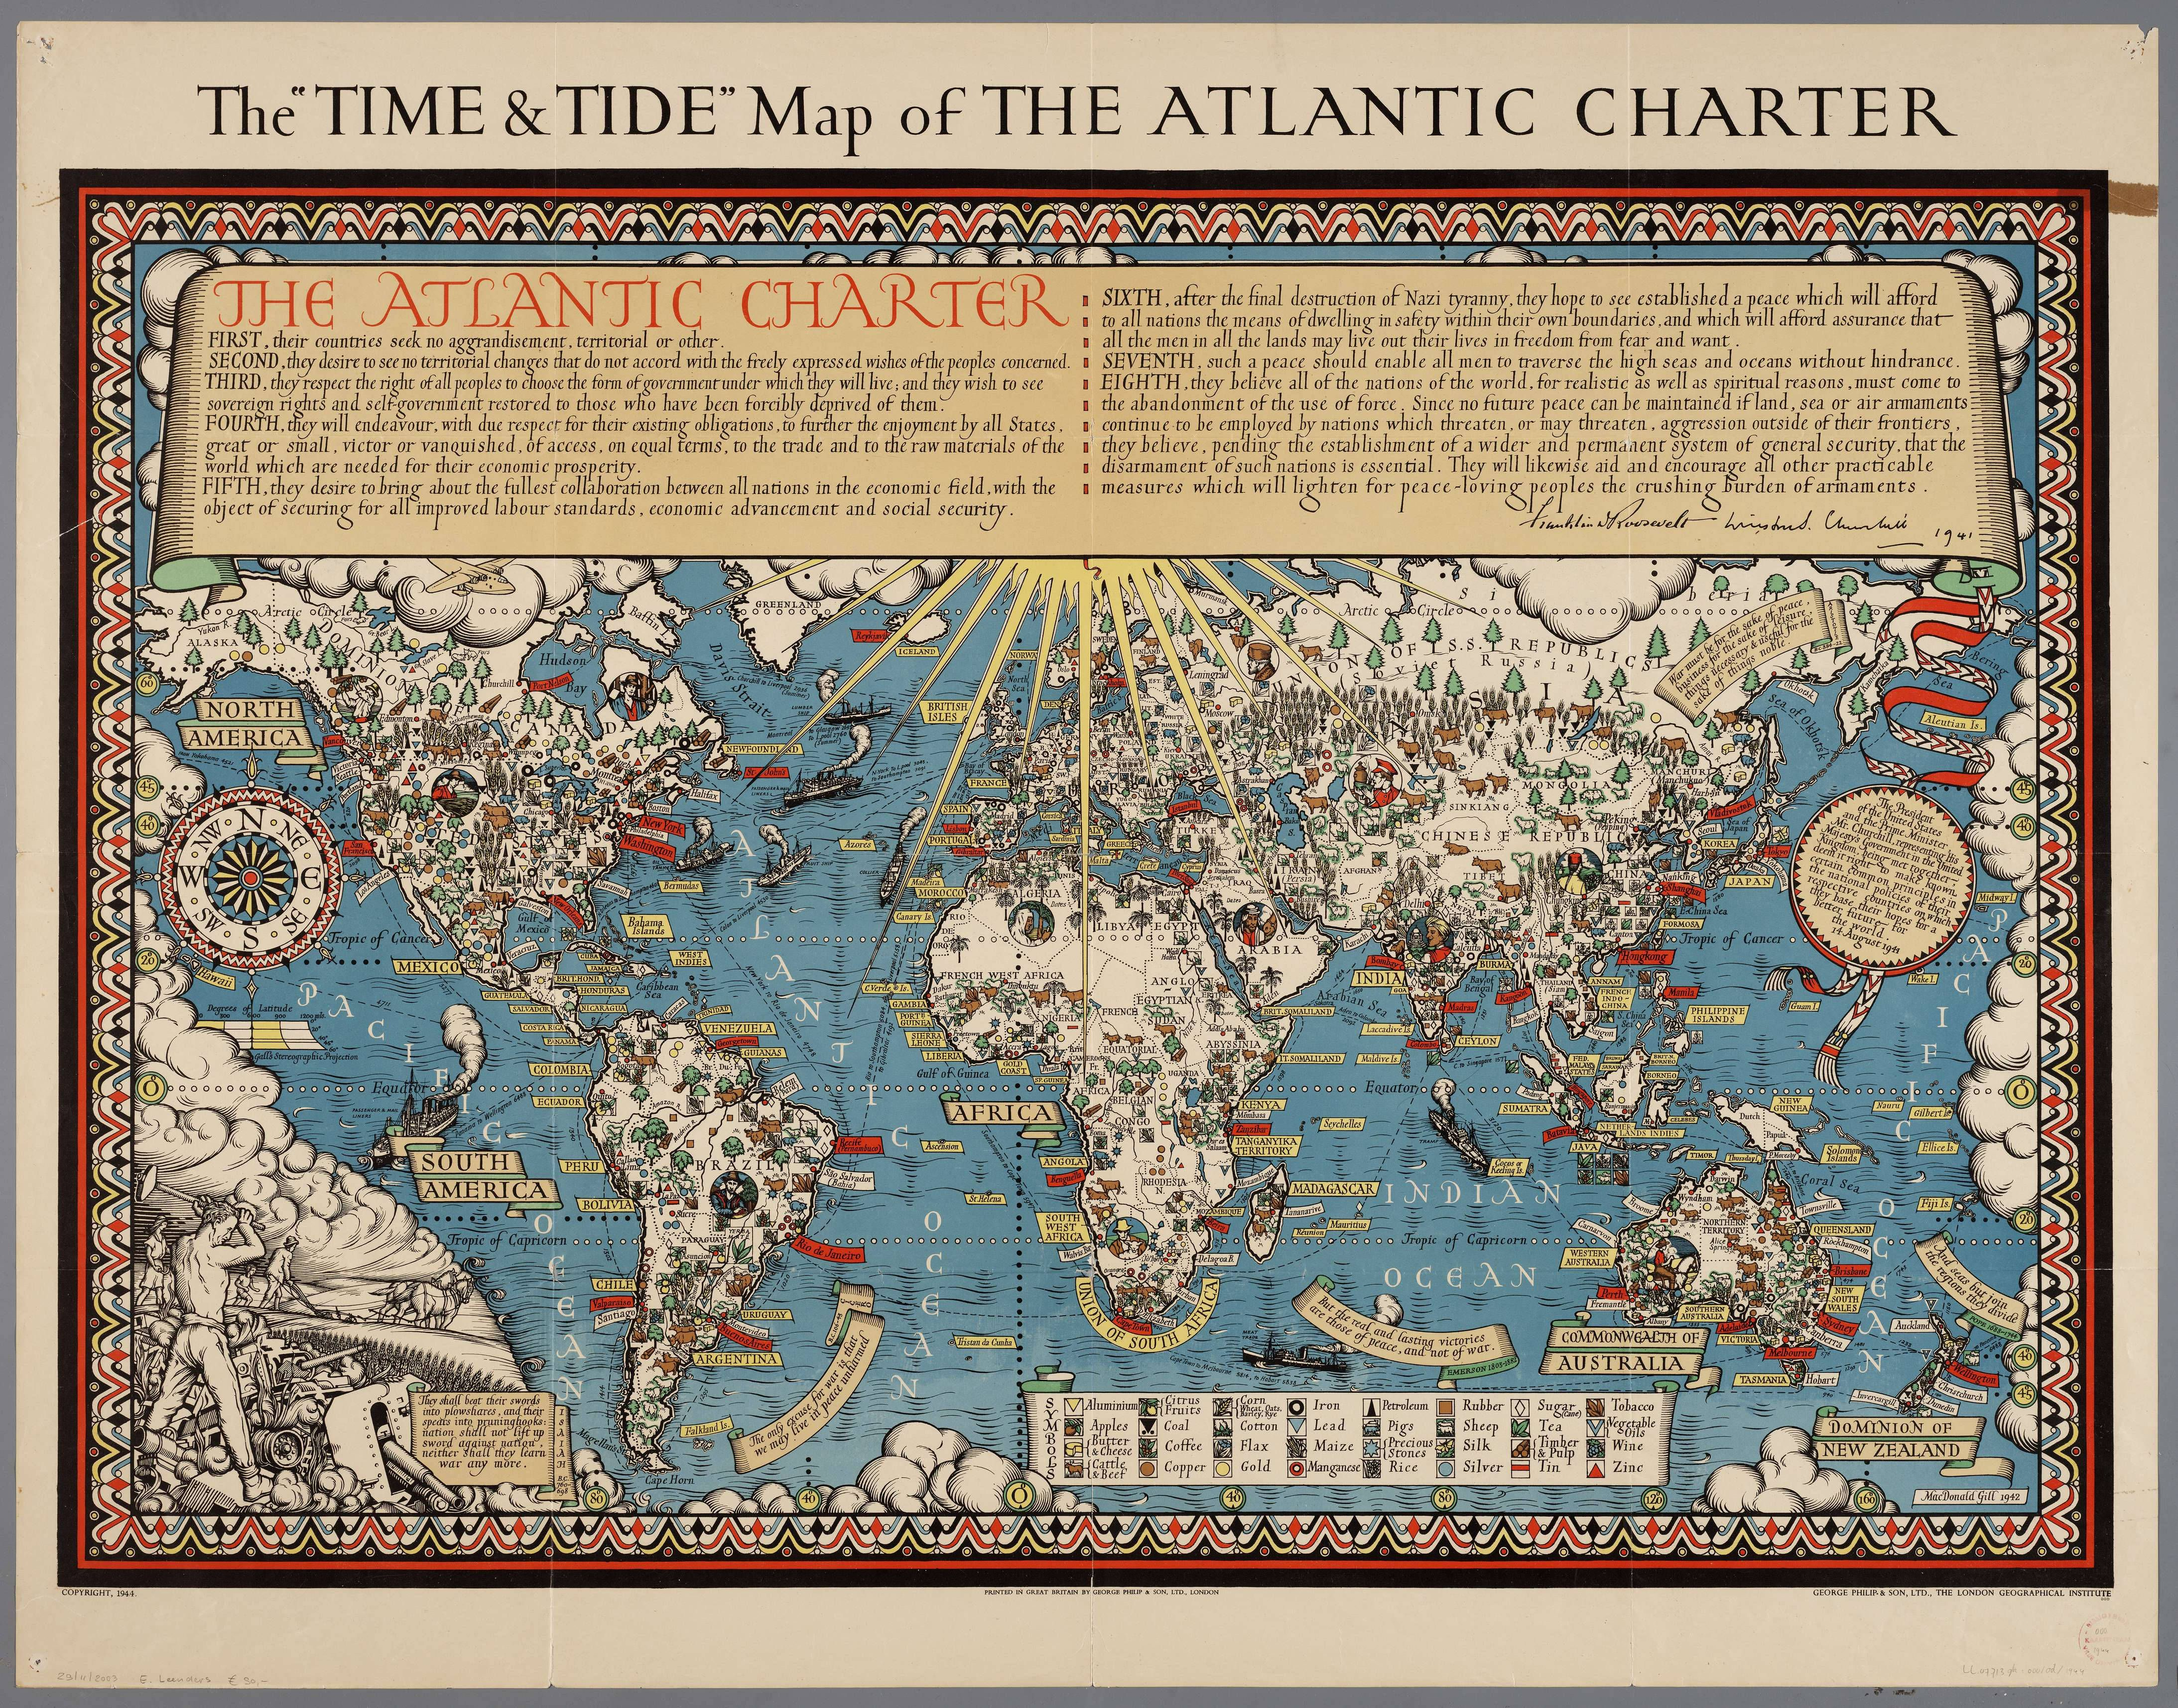 The time and tide map of the atlantic charter cartography the time and tide map of the atlantic charter cartography london nvjuhfo Image collections